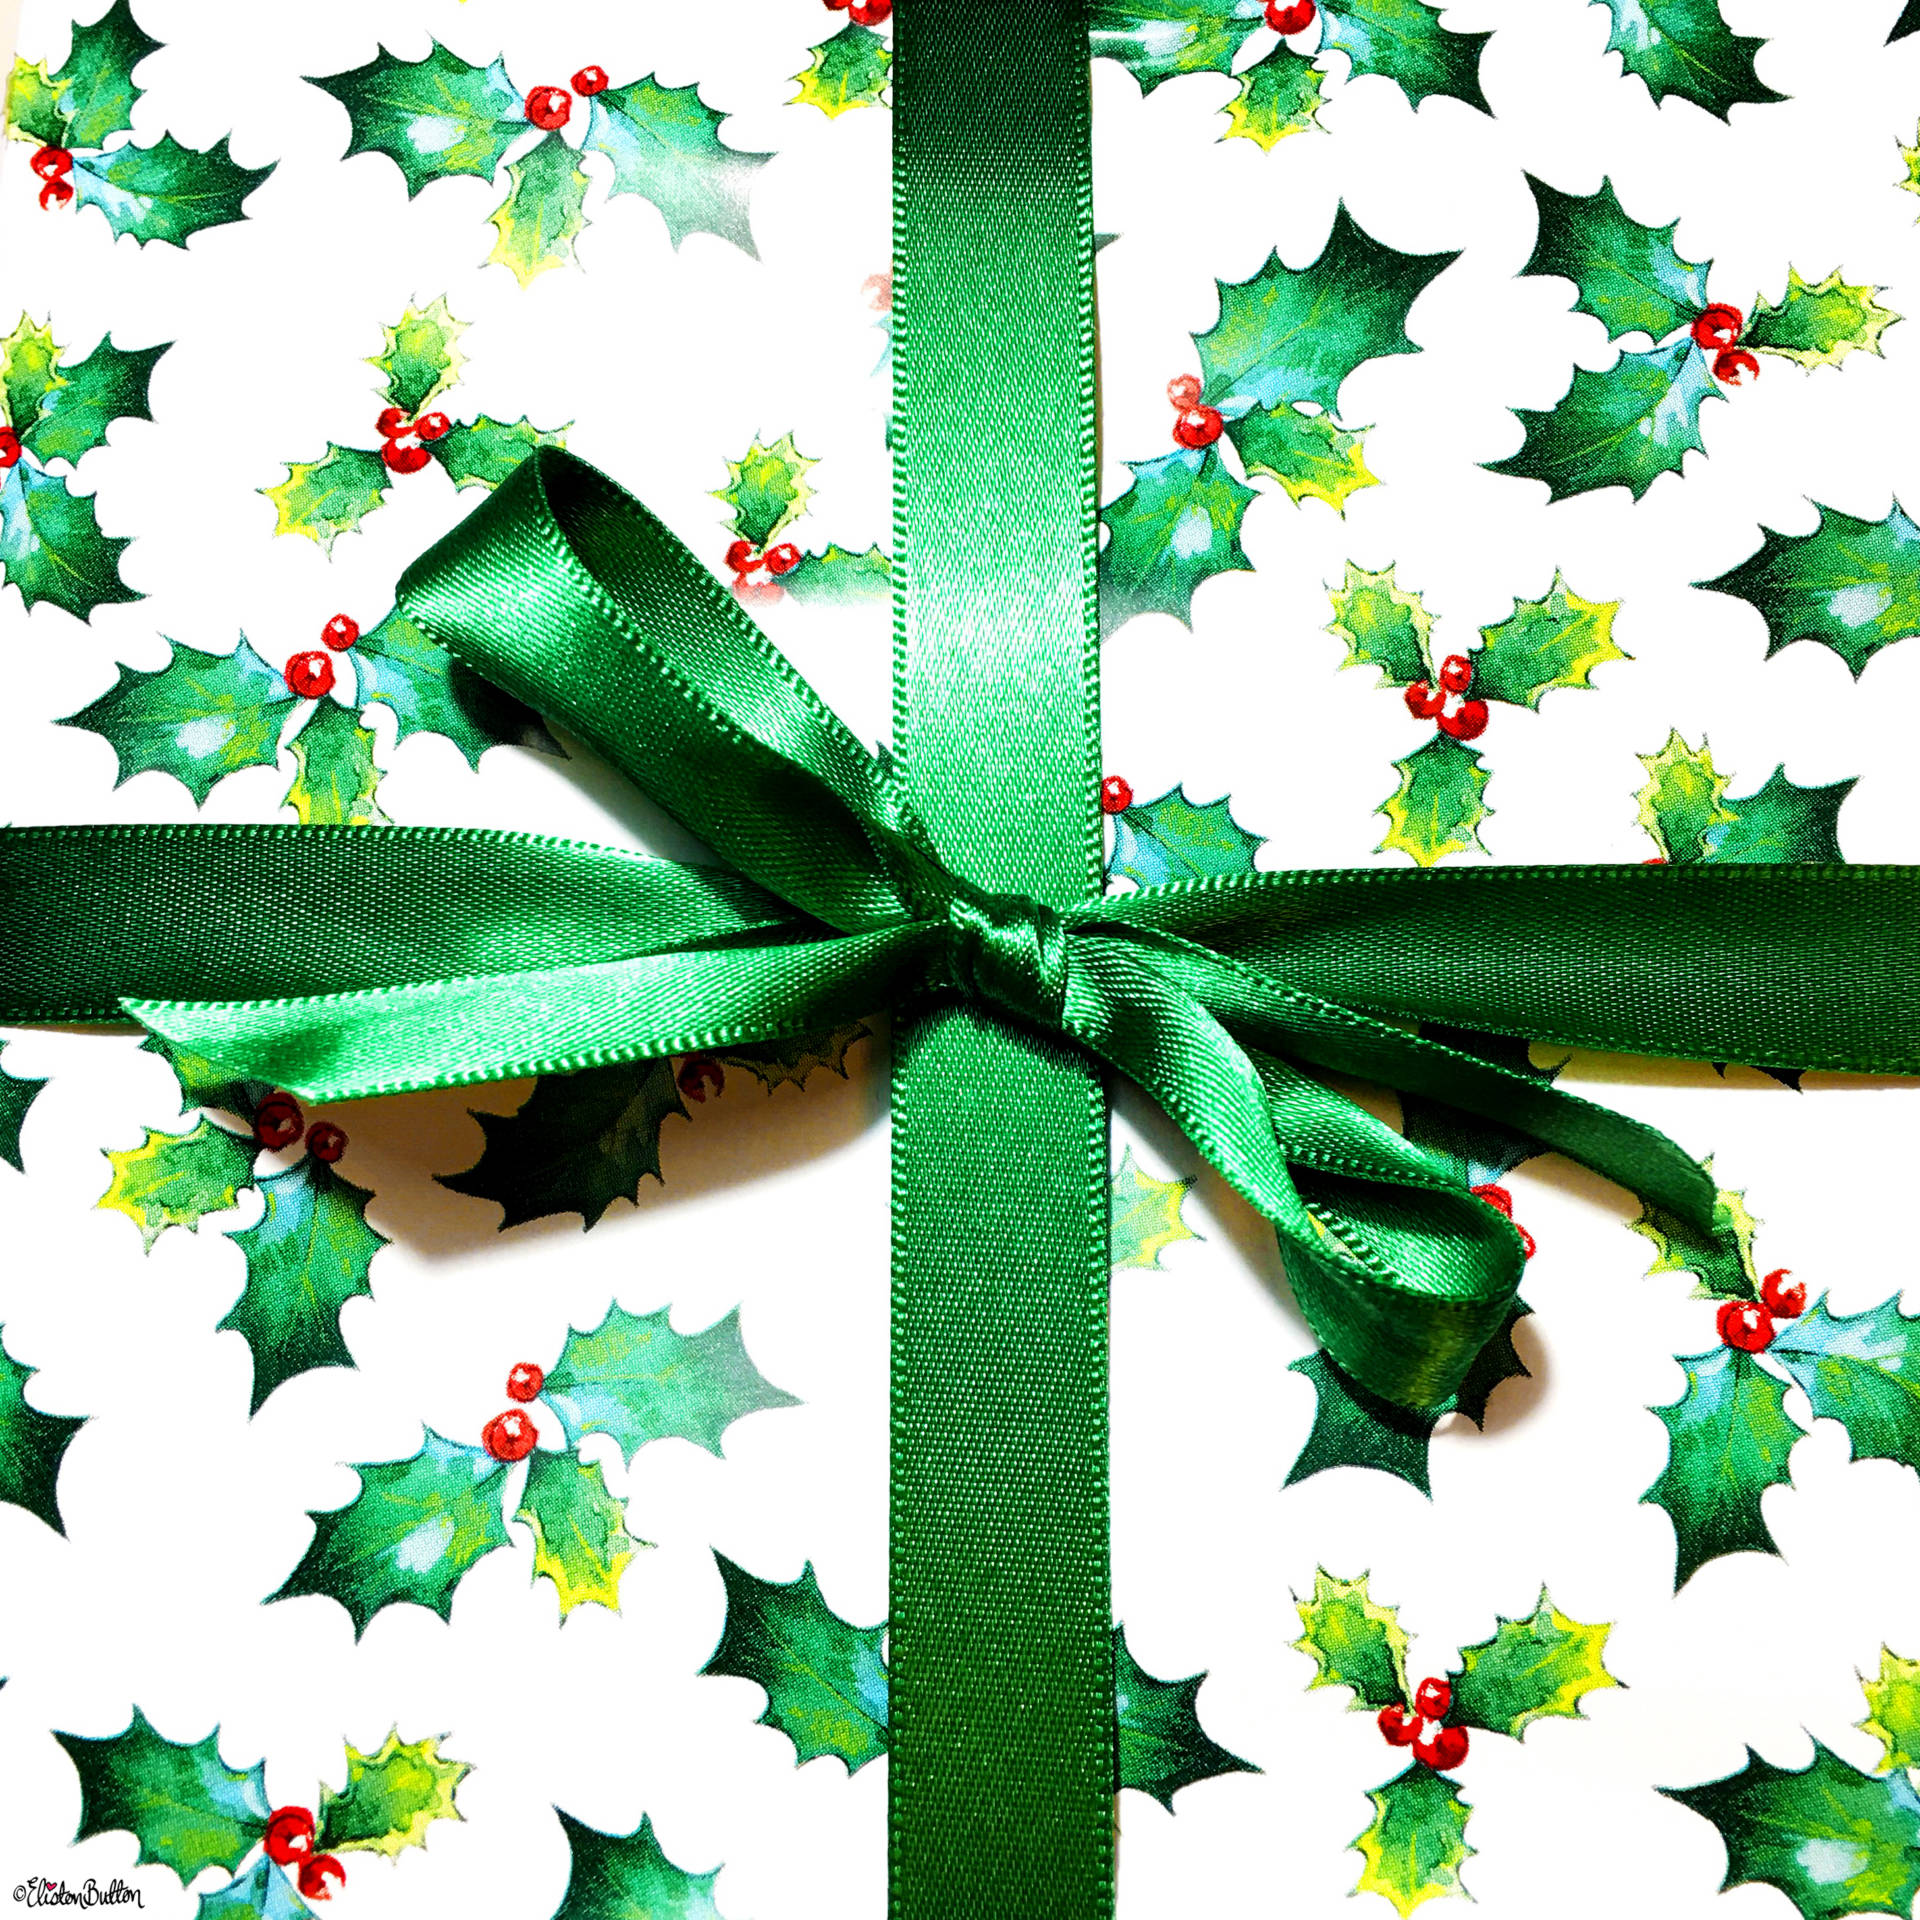 Vintage Holly and Berry Illustrated Wrapping Paper Tied with a Green Ribbon Bow - For the Love of…Christmas at www.elistonbutton.com - Eliston Button - That Crafty Kid – Art, Design, Craft & Adventure.